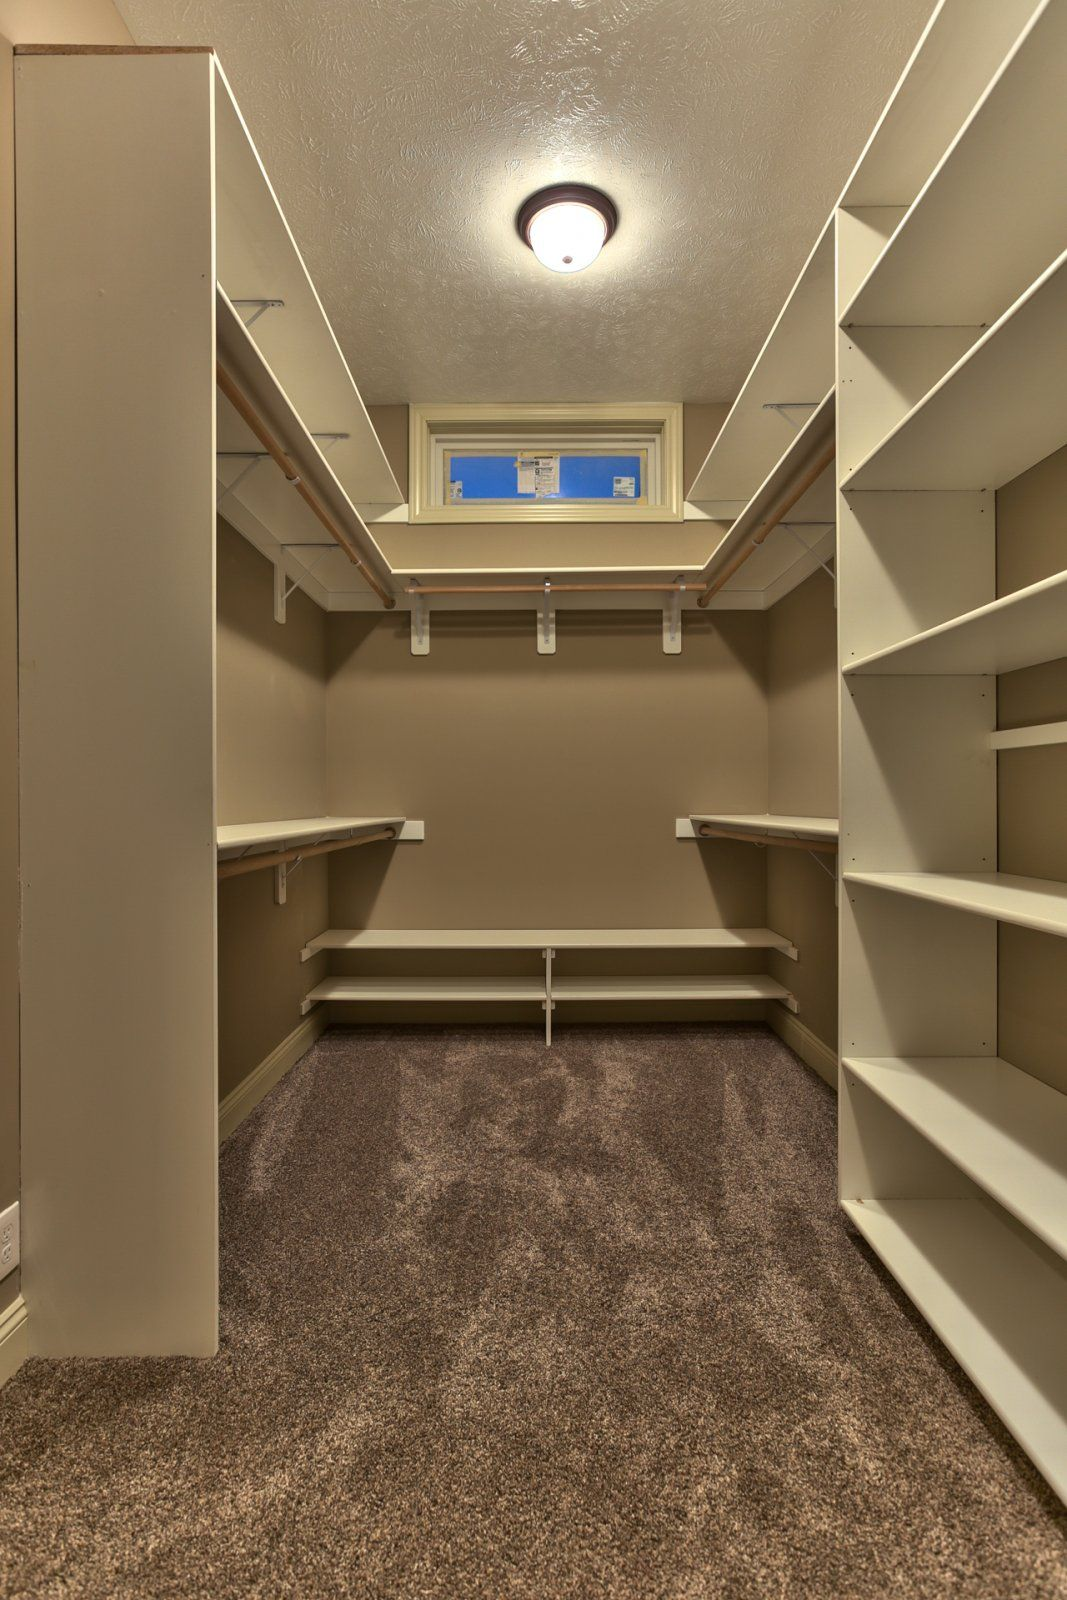 Best 12 Small Walk In Closet Ideas And Organizer Designs 400 x 300